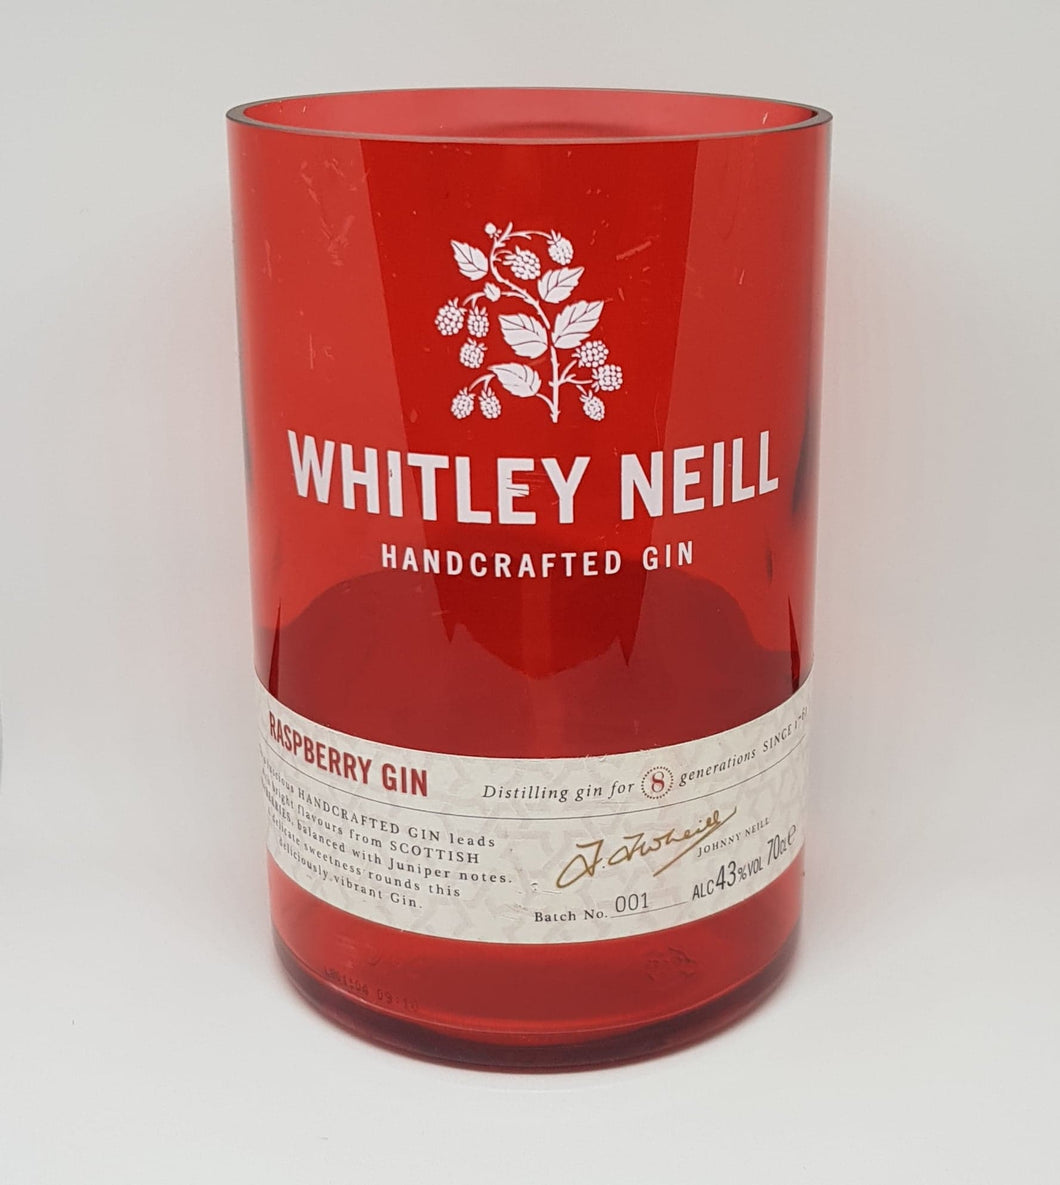 Whitley Neill Raspberry Gin Bottle Candle